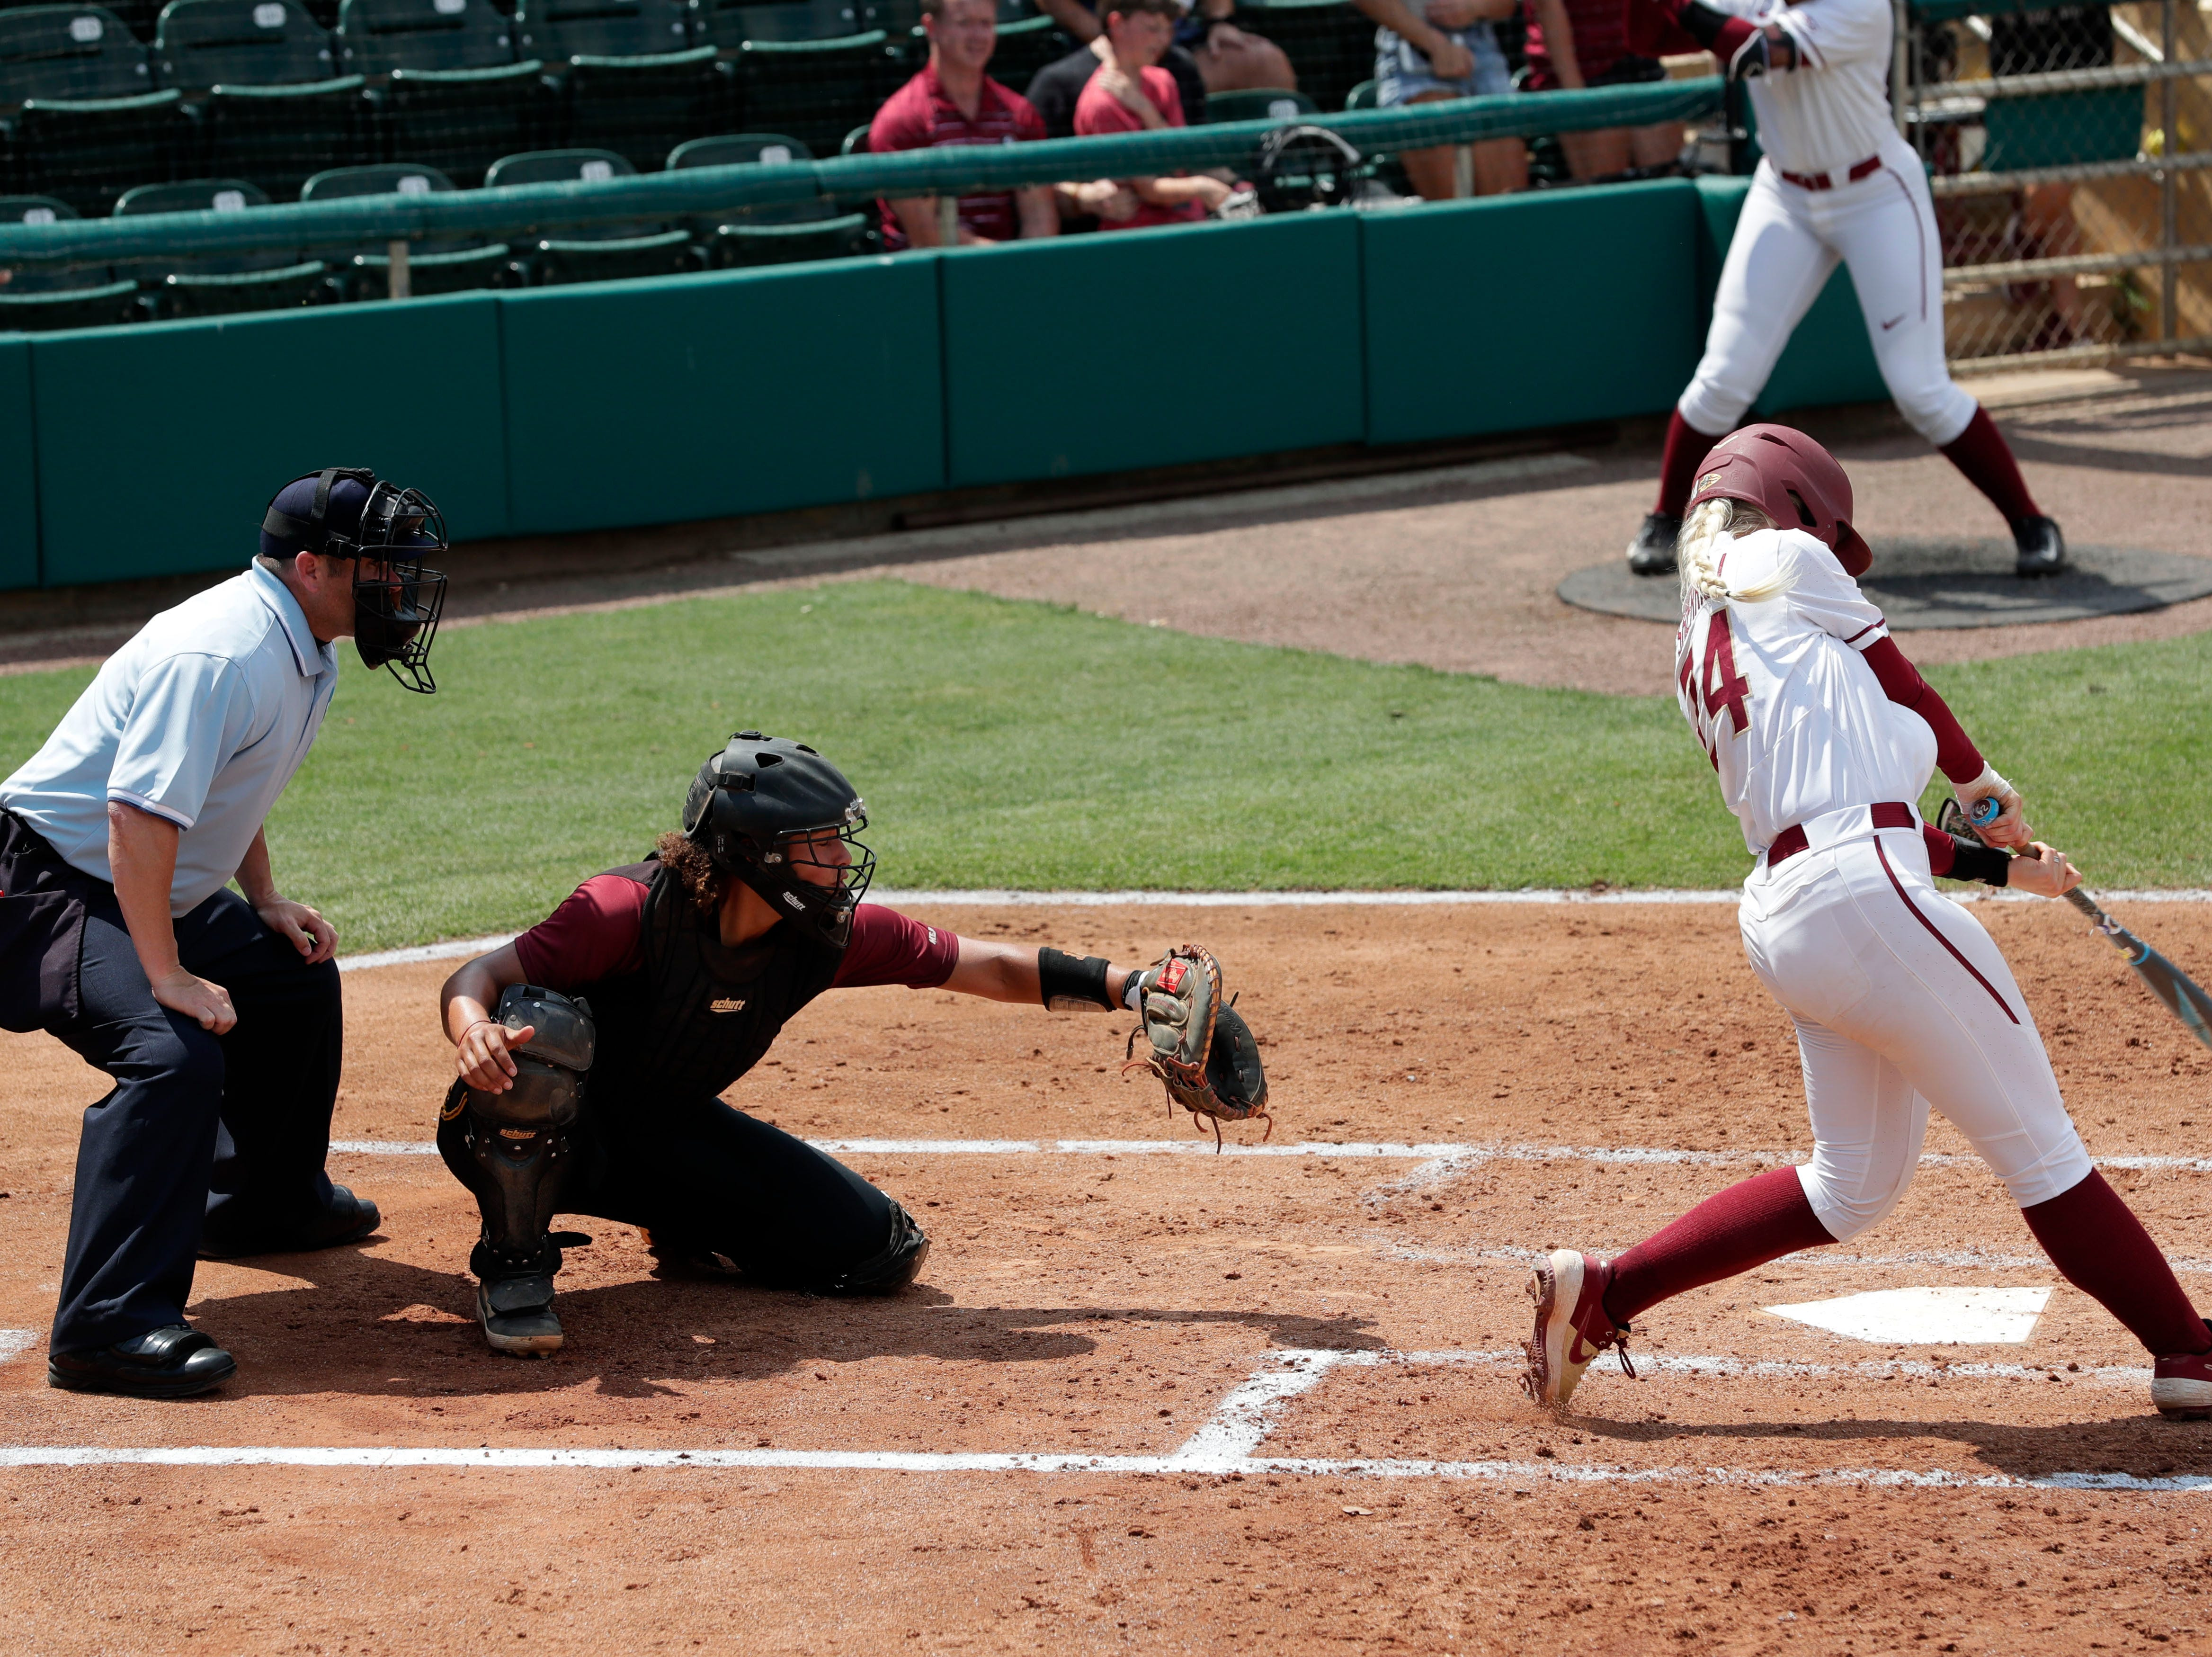 Florida State Seminoles utility player Sydney Sherrill (24) gets a hit. The Florida State Seminoles host the Bethune-Cookman Wildcats in the first round of the NCAA Regional Playoffs Friday, May 17, 2019.